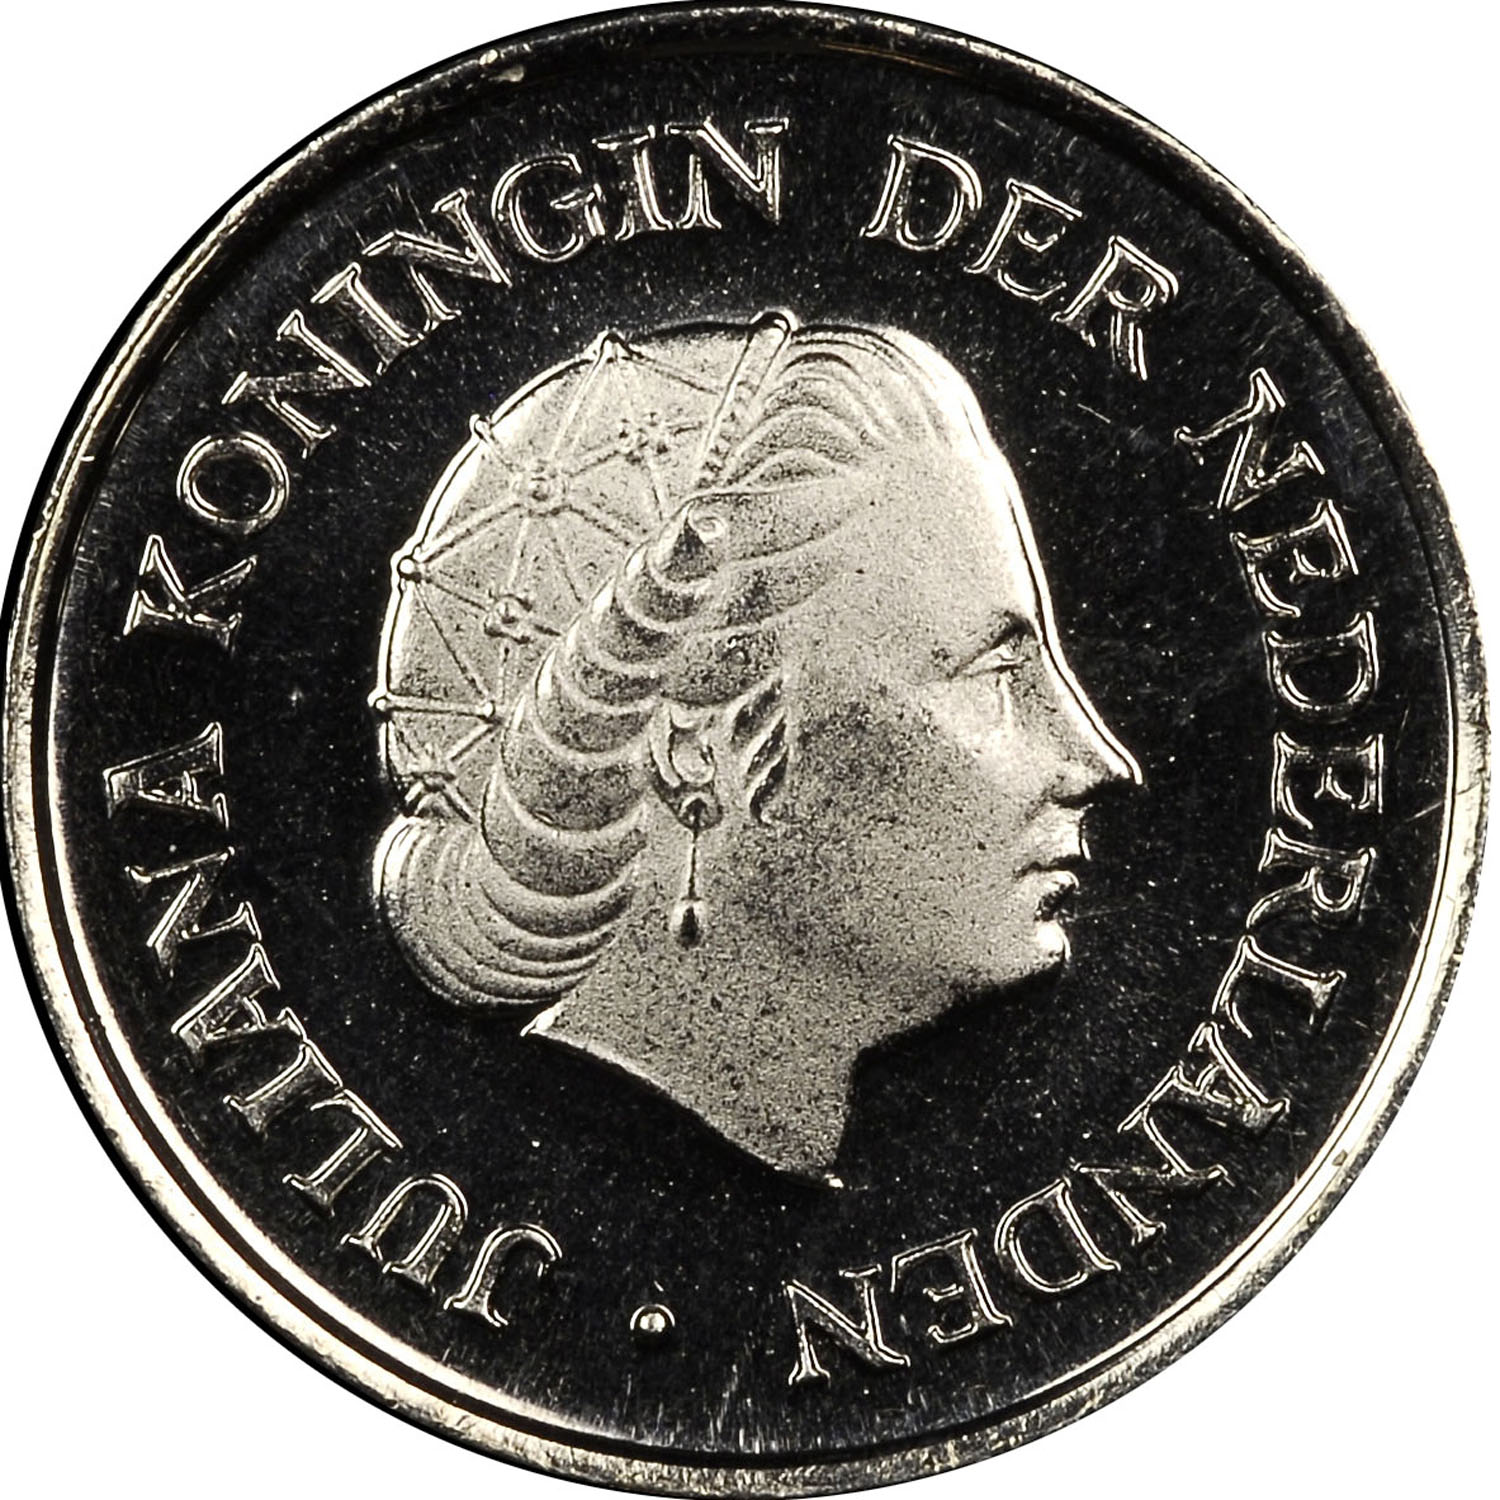 Netherlands 25 Cents Km 183 Prices Amp Values